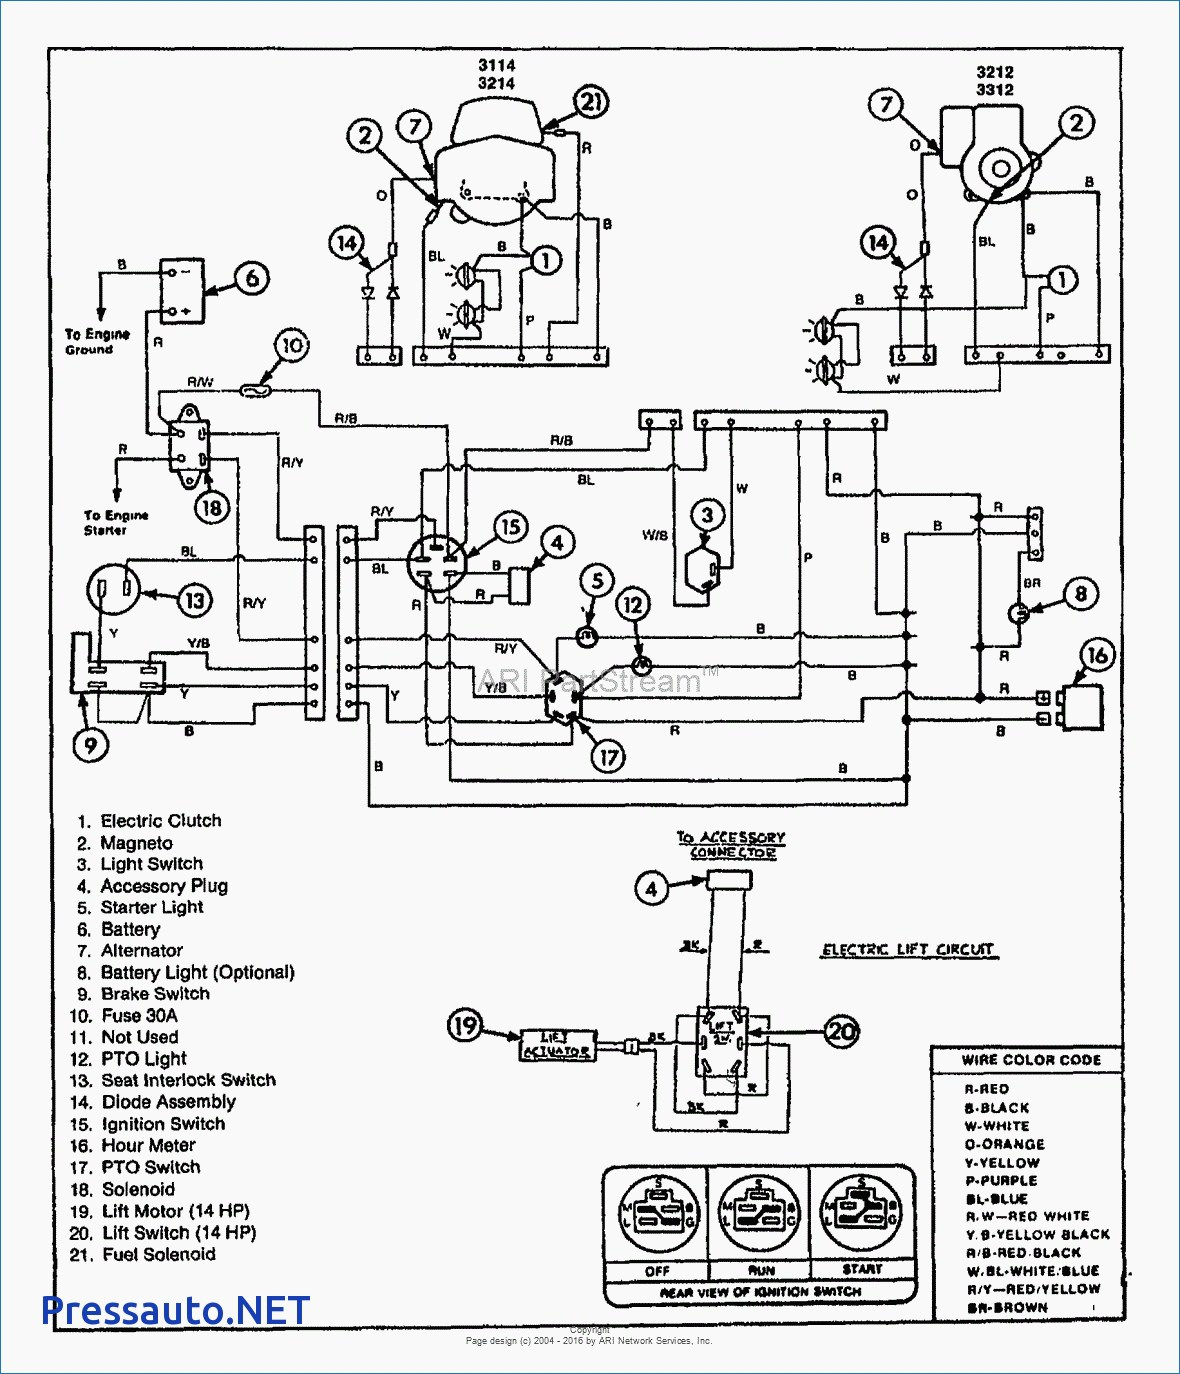 hight resolution of 30a 250v plug wiring diagram collection30a 250v plug wiring diagram 30a 250v plug wiring diagram unique